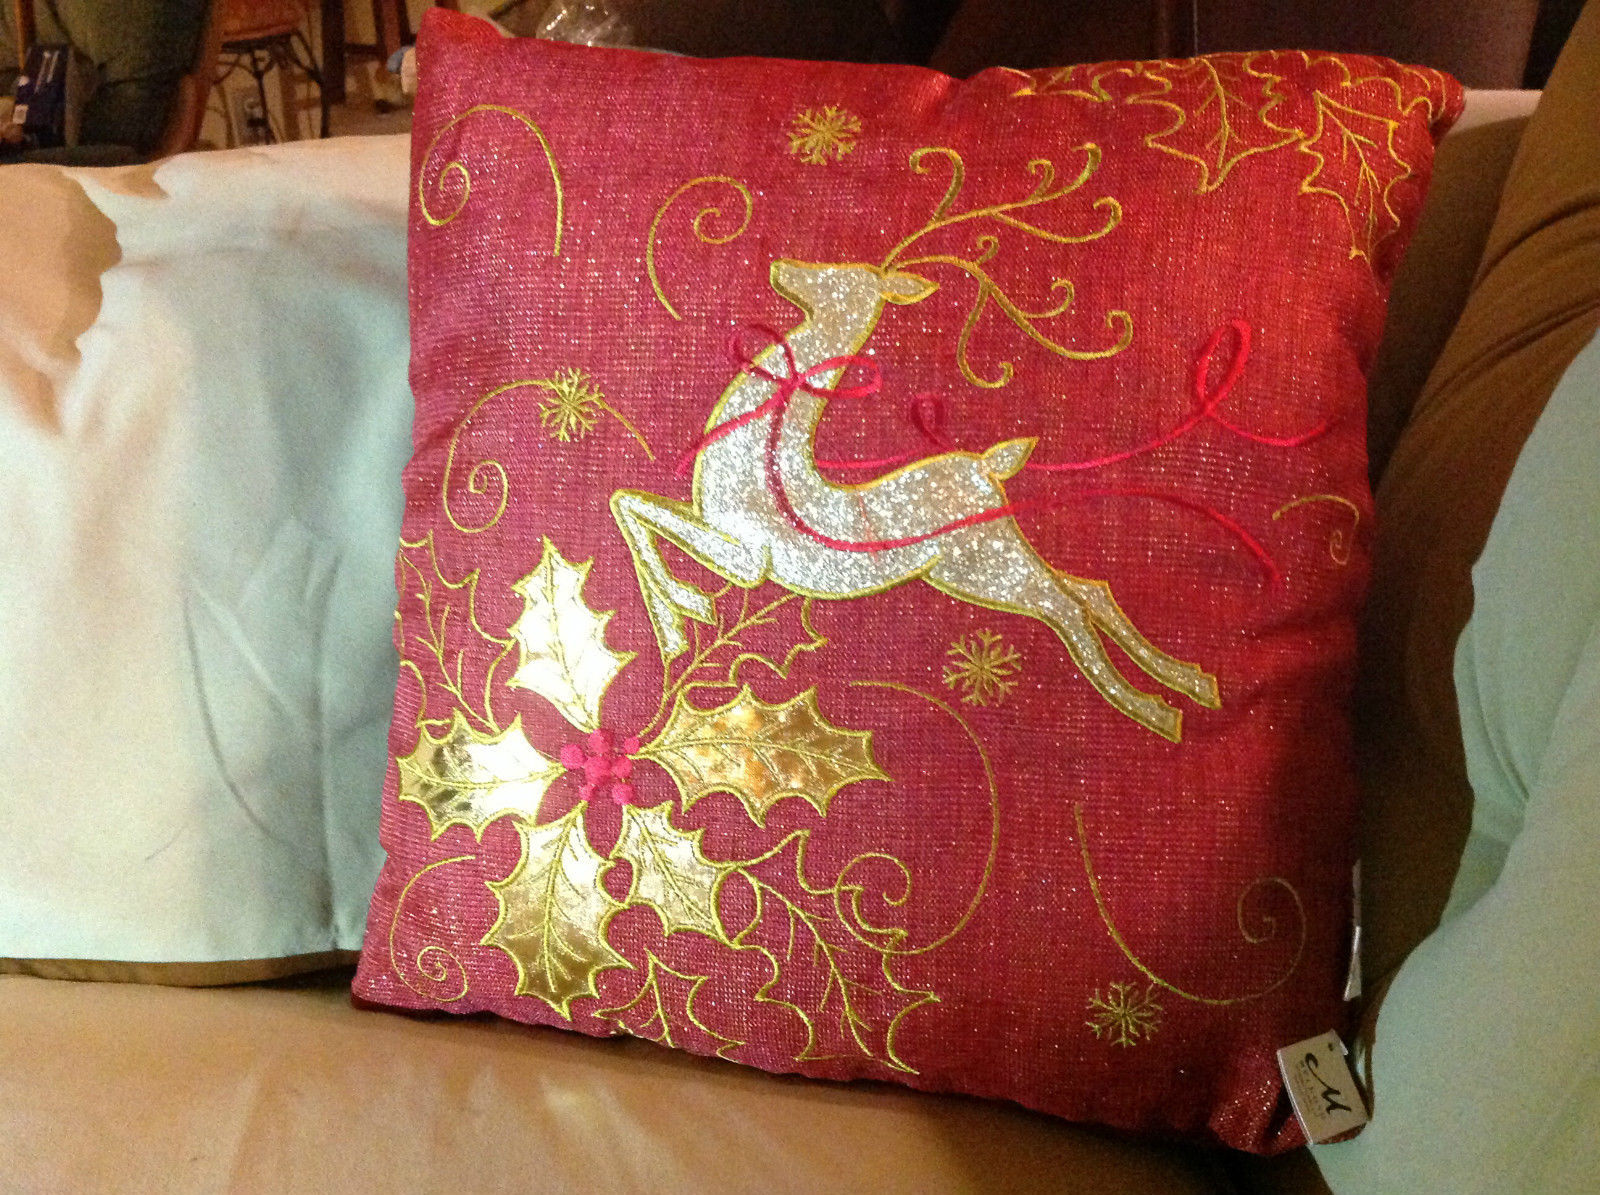 Red Holiday Decorative Sparkly Square Pillow w Reindeer Gold Colored Holly